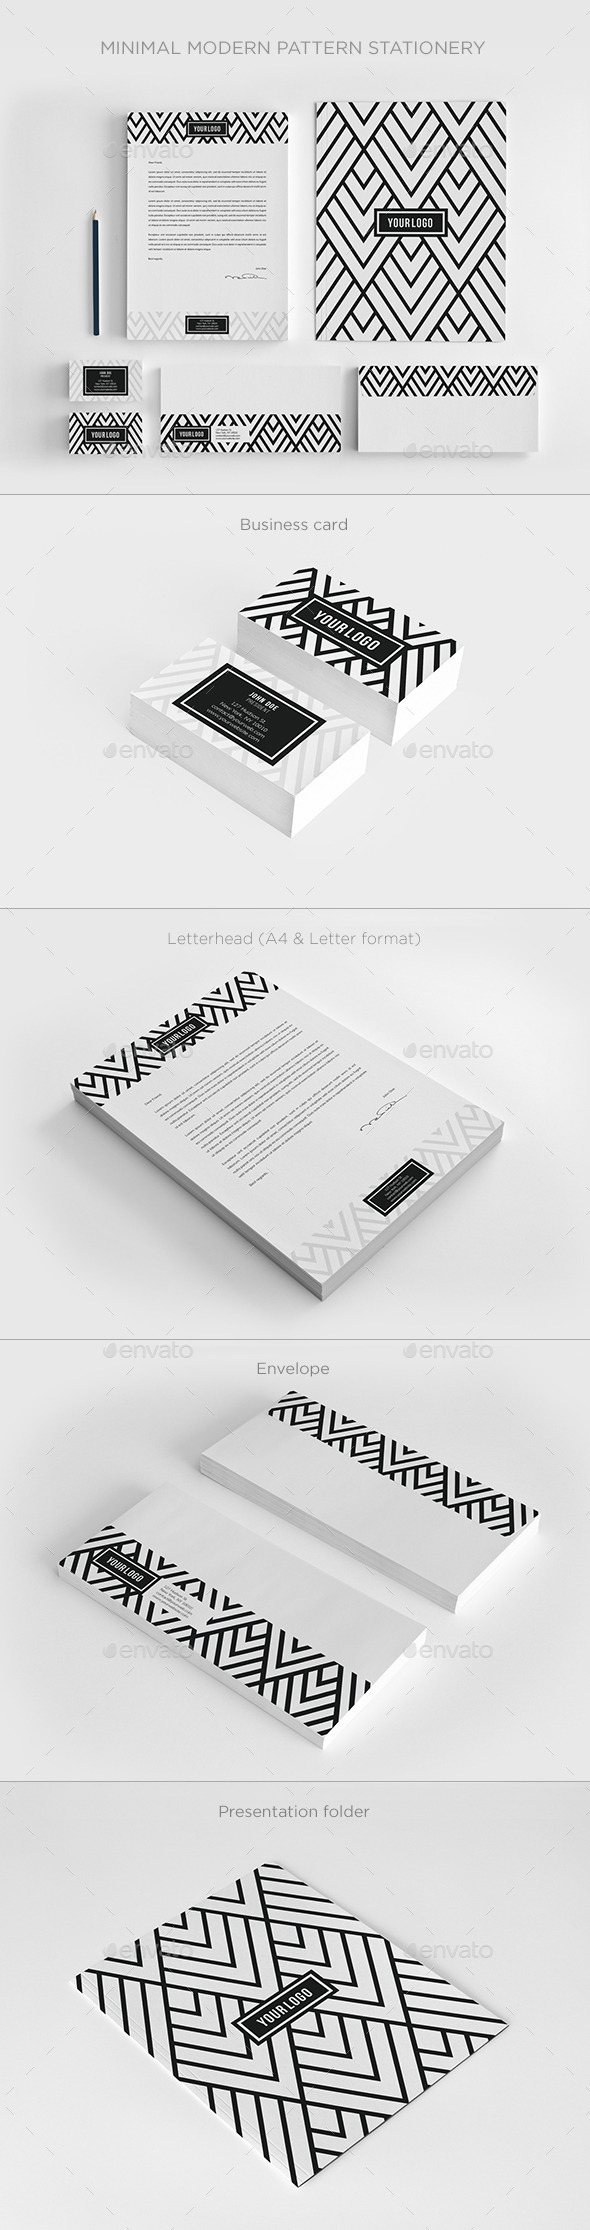 Minimal Modern Pattern Stationery